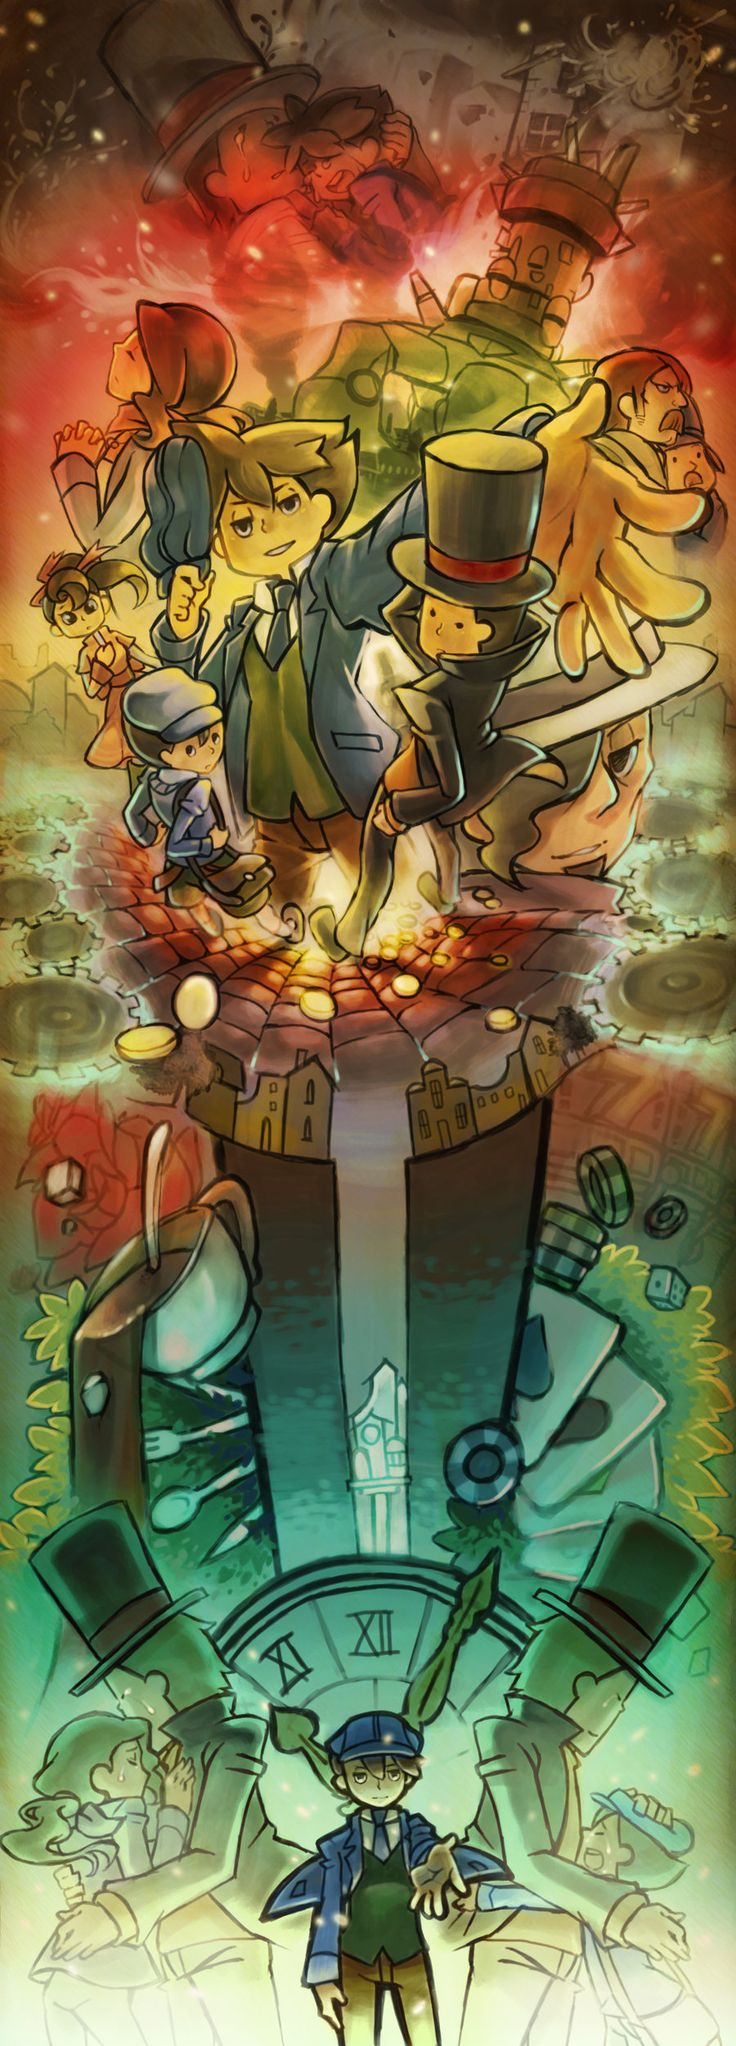 Professor Layton and the Unwound Future. A game with a very depressing, but happy, storyline. God only a true fan cries every time. Which includes me.